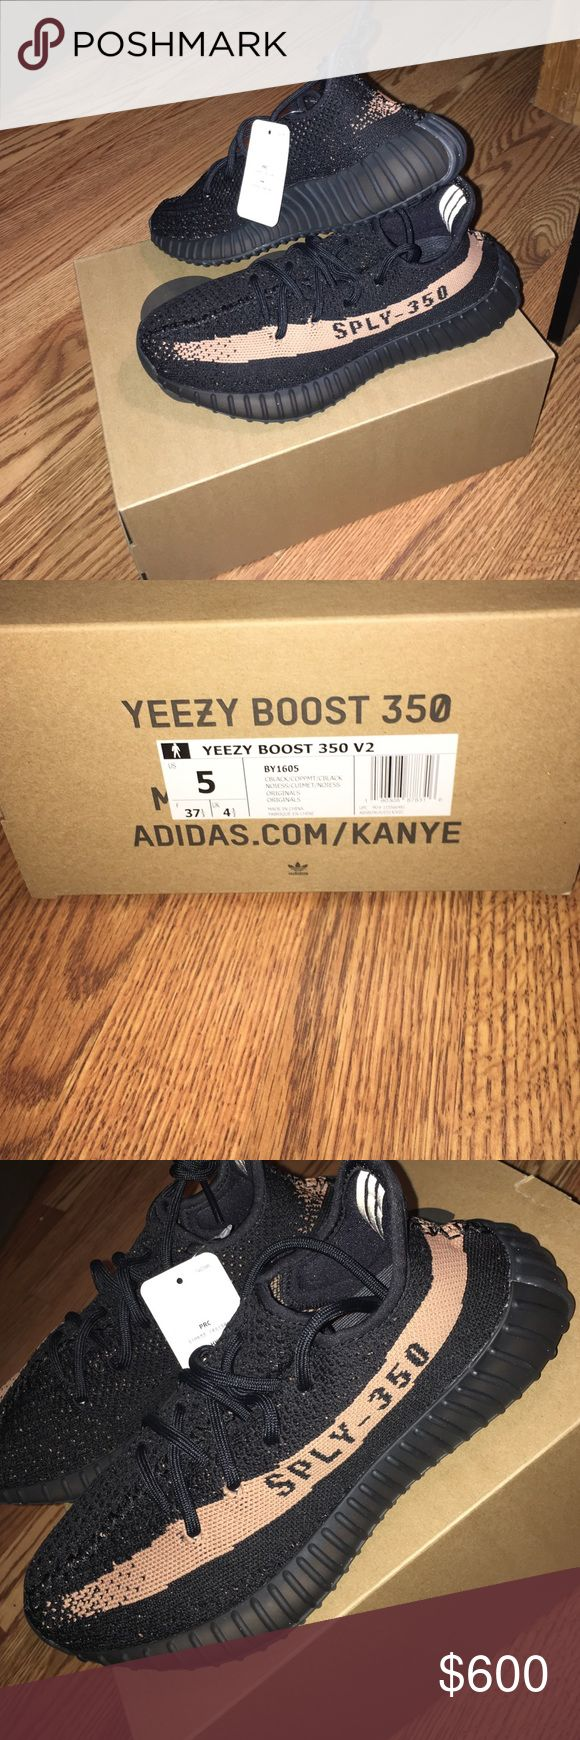 431d4971e9a97 adidas yeezy boost 350 turtle dove authentic box and wrapping yeezy ...